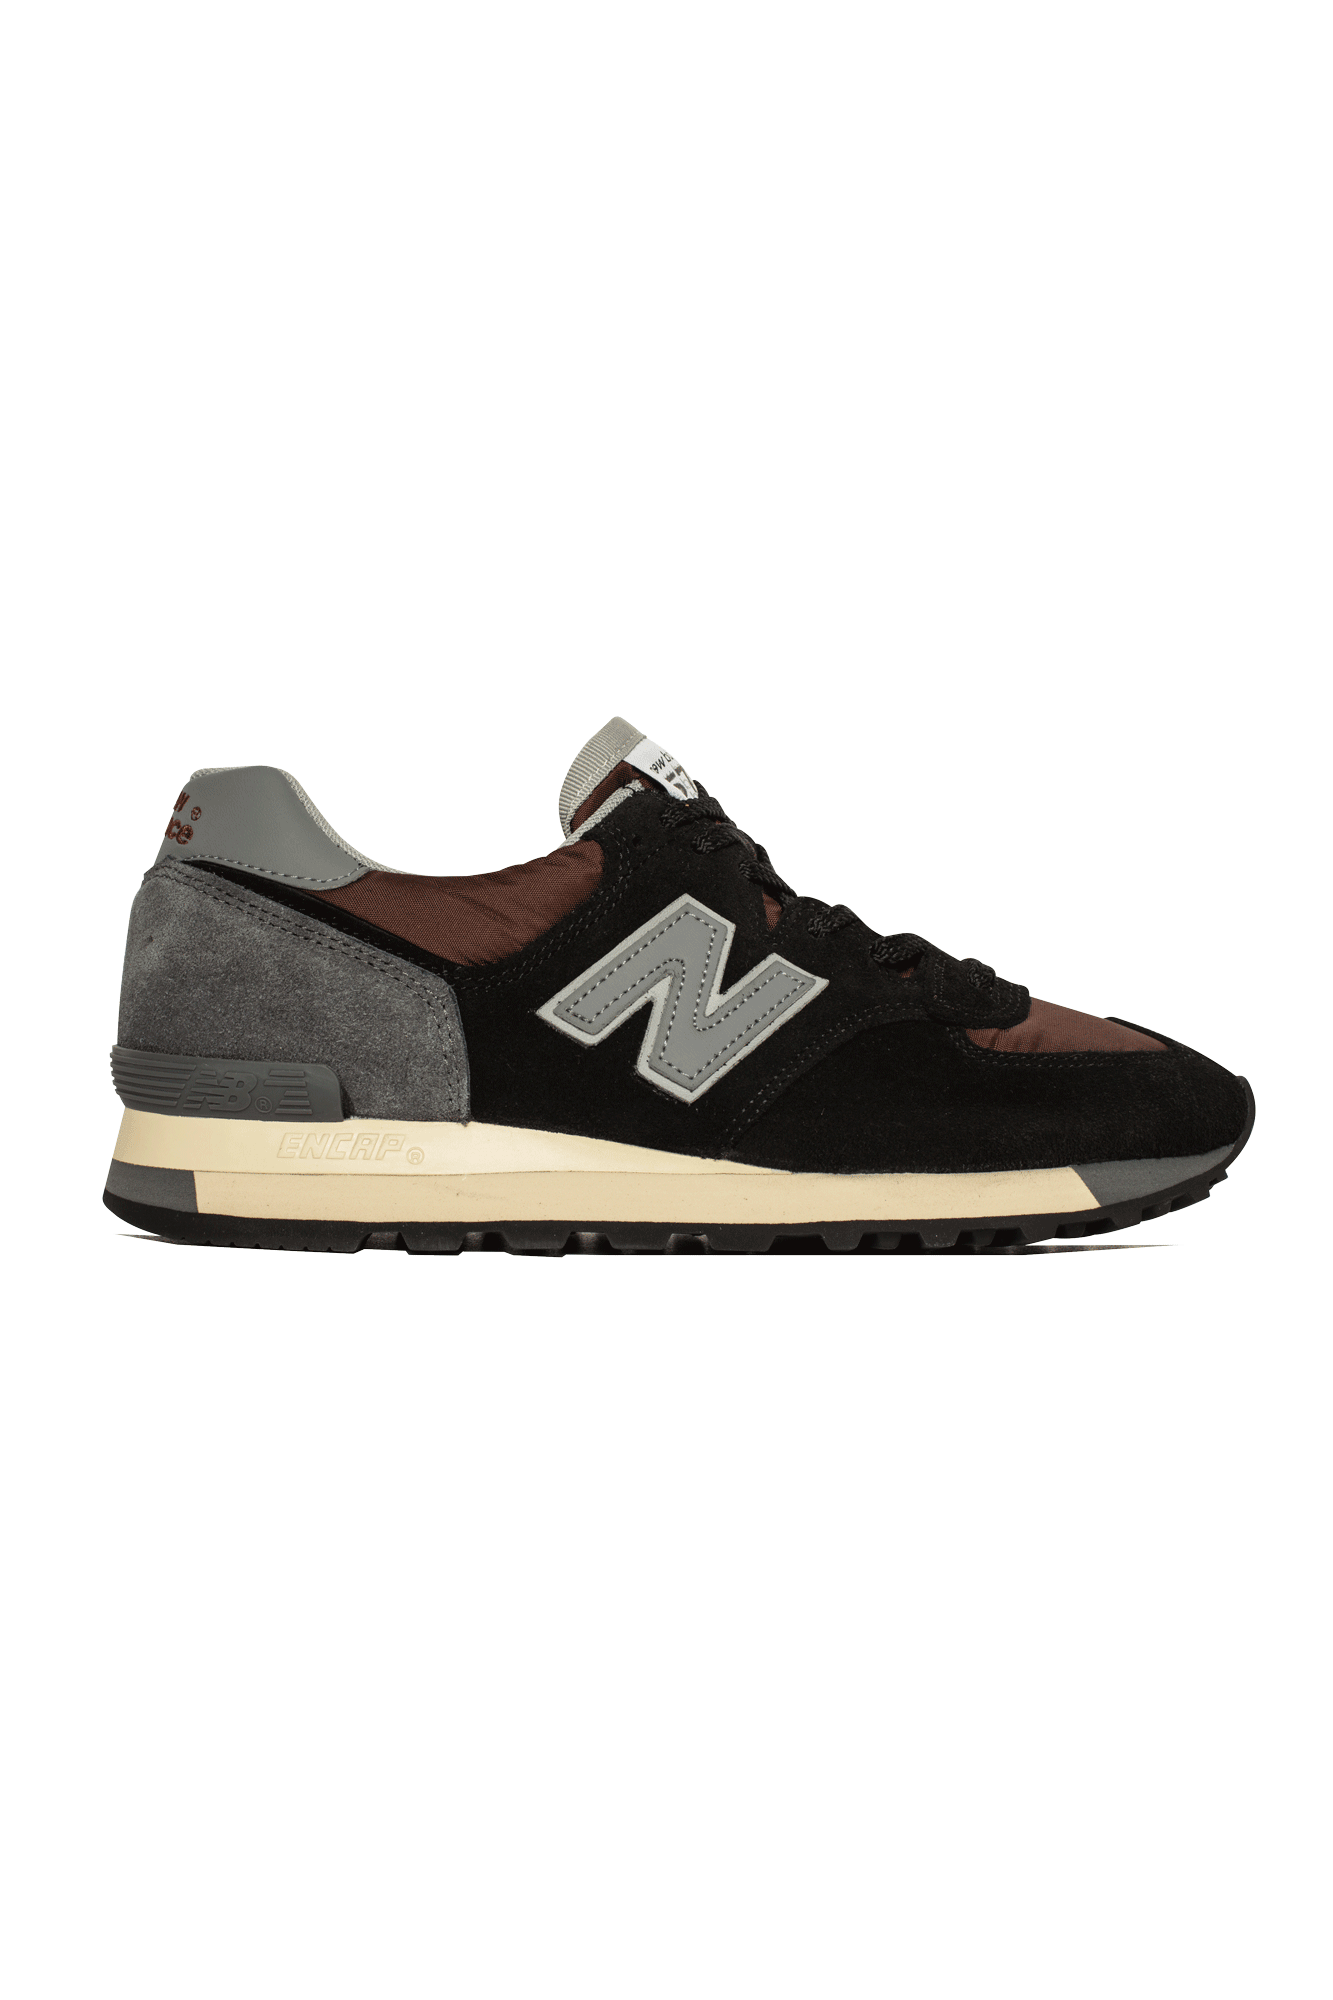 New Balance 577 Brown Grey Green | Men's Style | New